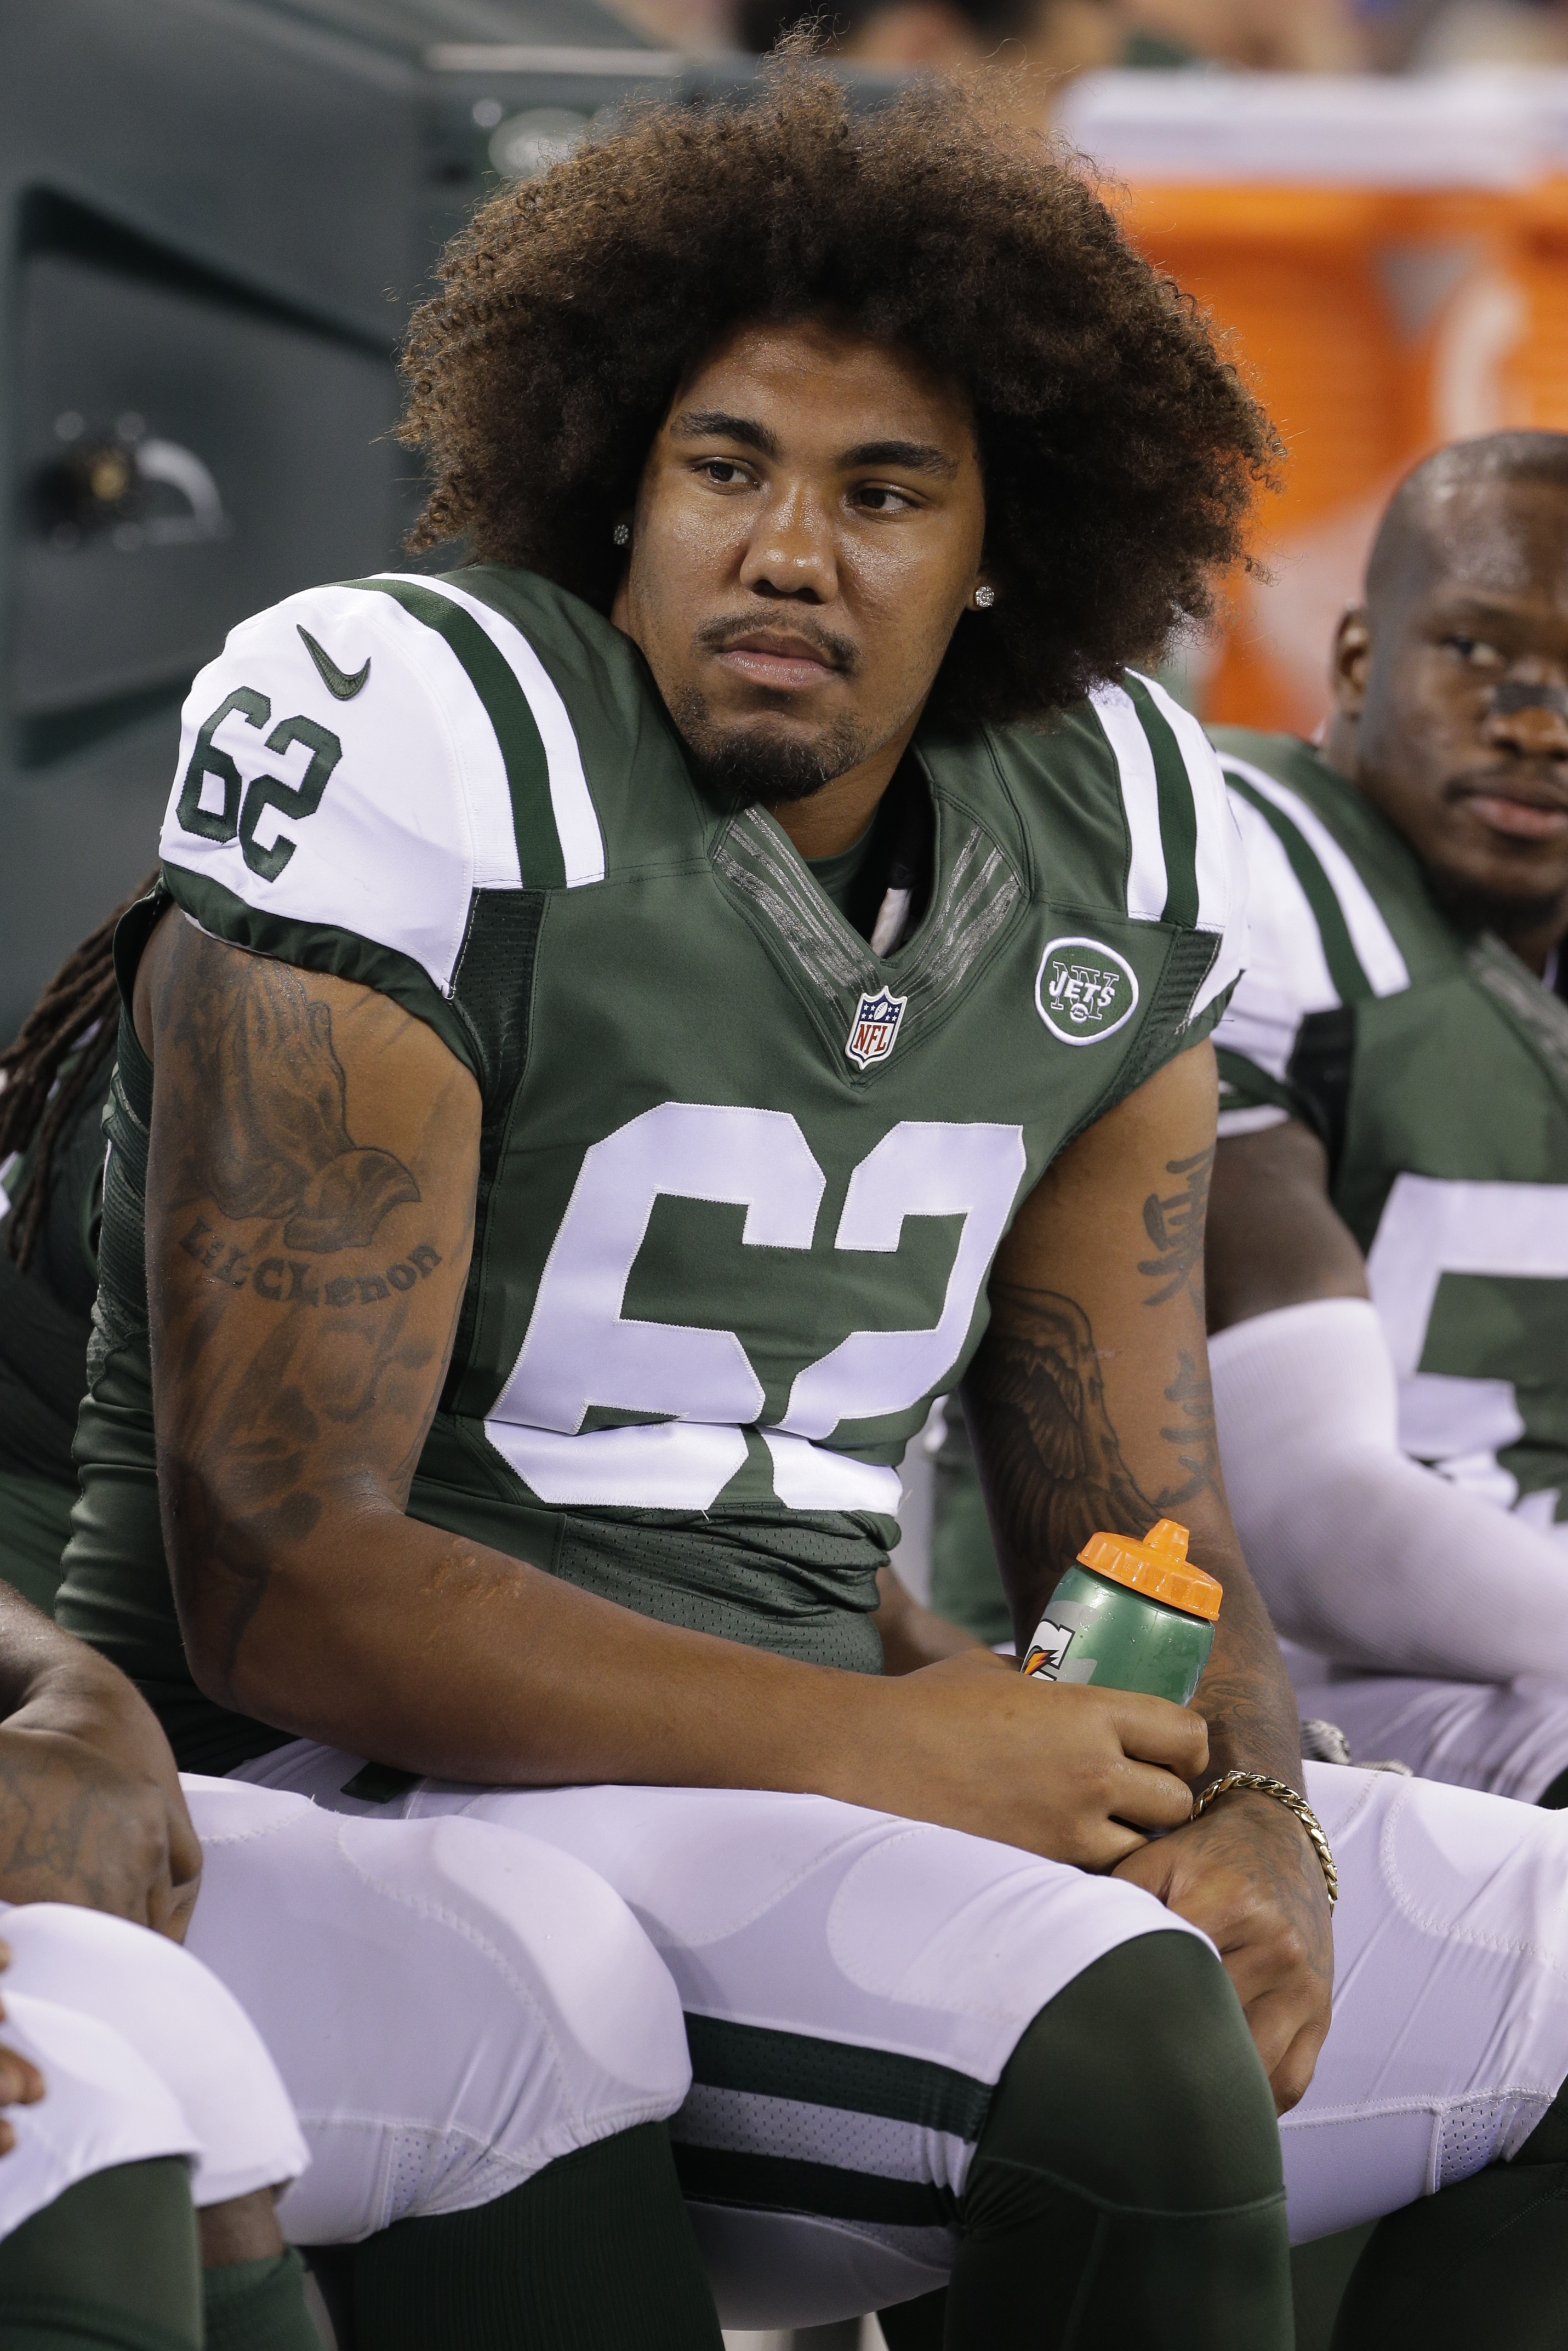 FILE - In this Sept. 3, 2015, file photo, New York Jets defensive tackle Leonard Williams (62) talks to teammates during the second half of a preseason NFL football game against the Philadelphia Eagles in East Rutherford, N.J. Williams realized toward the